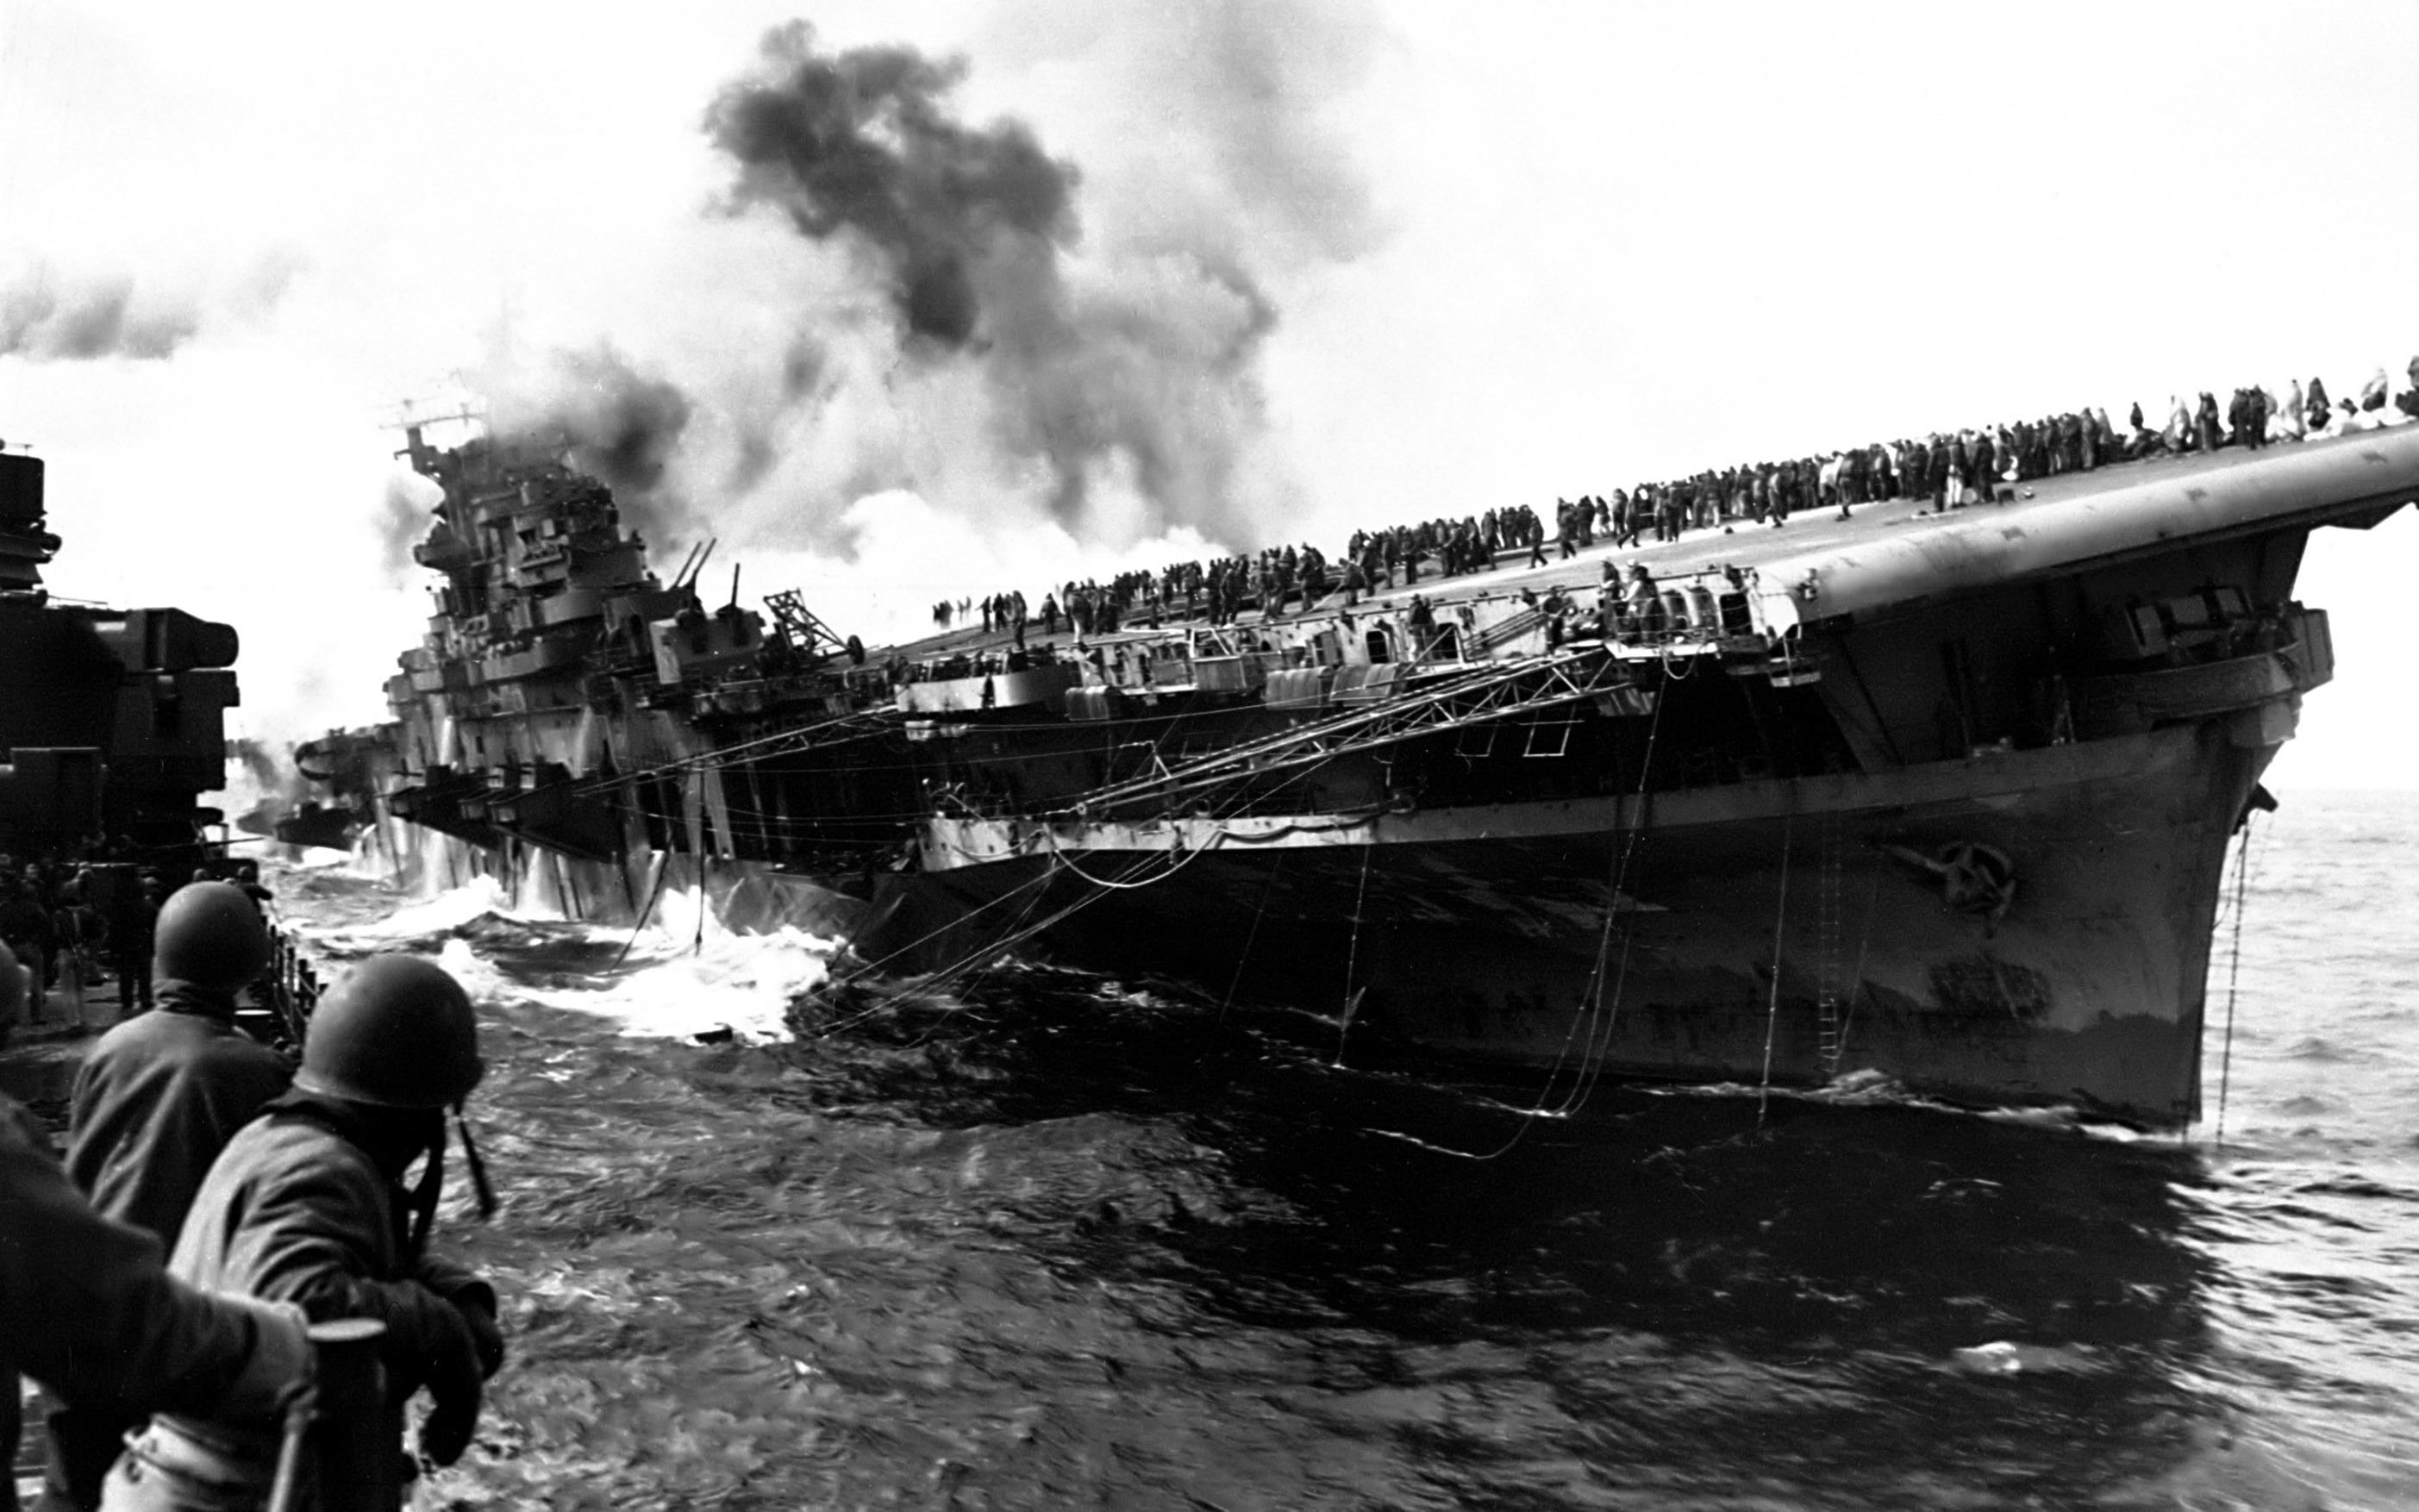 attack on Carrier uss